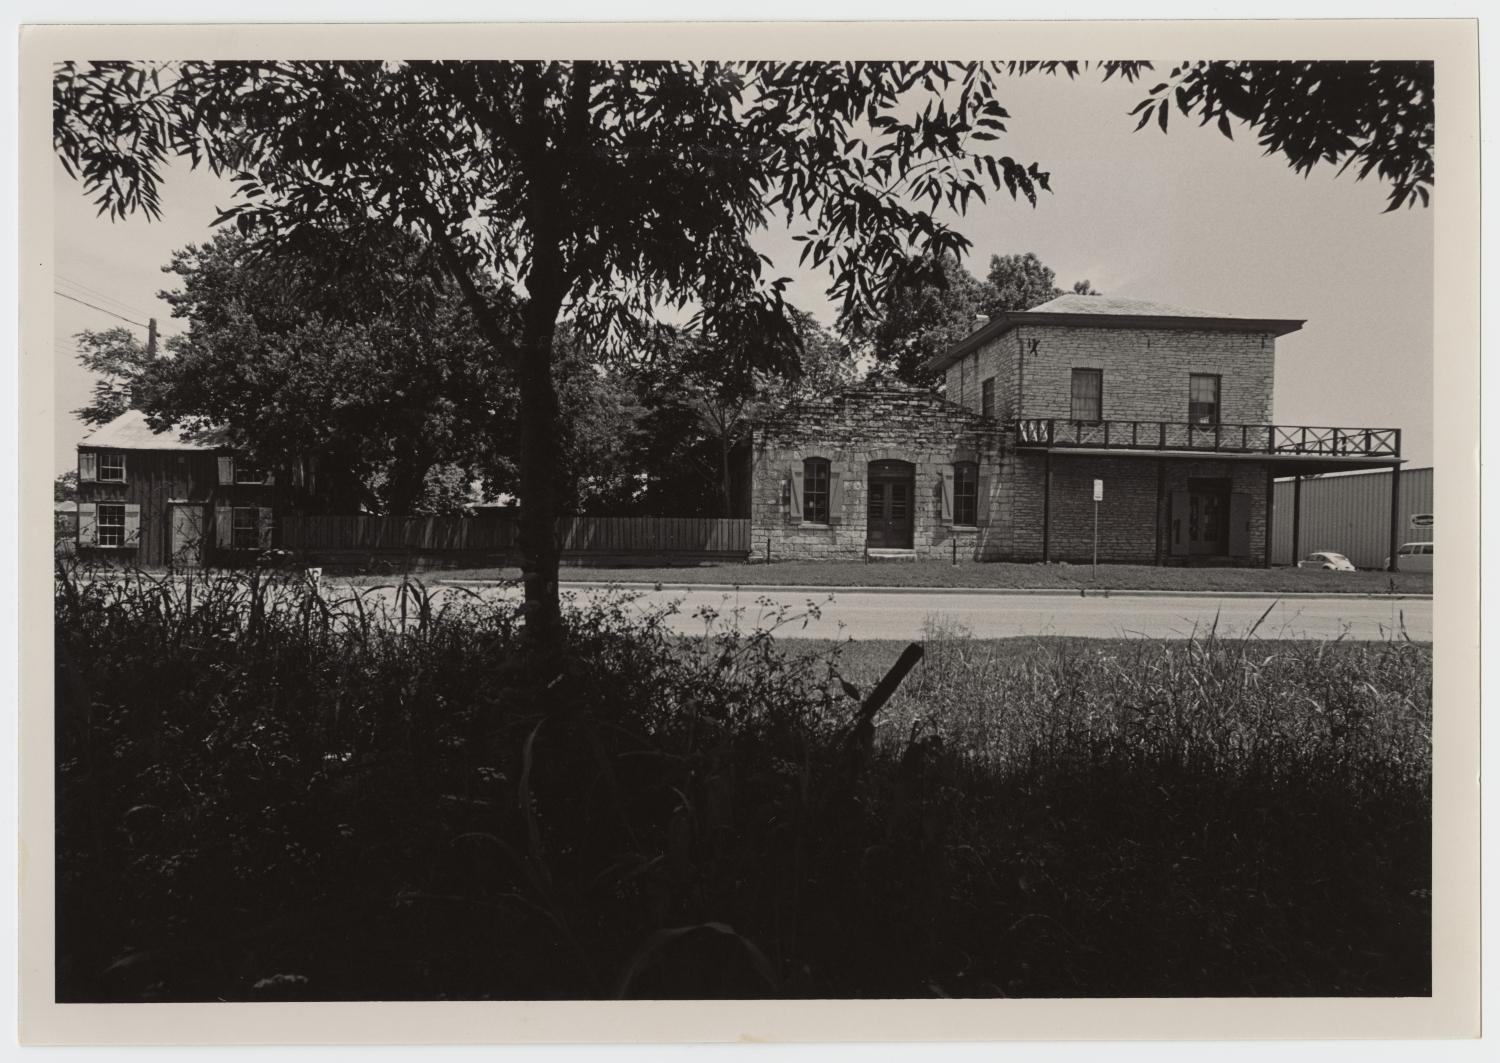 Hofheintz-Reissig Residence and Store - larger view of property (date unknown) via University of North Texas